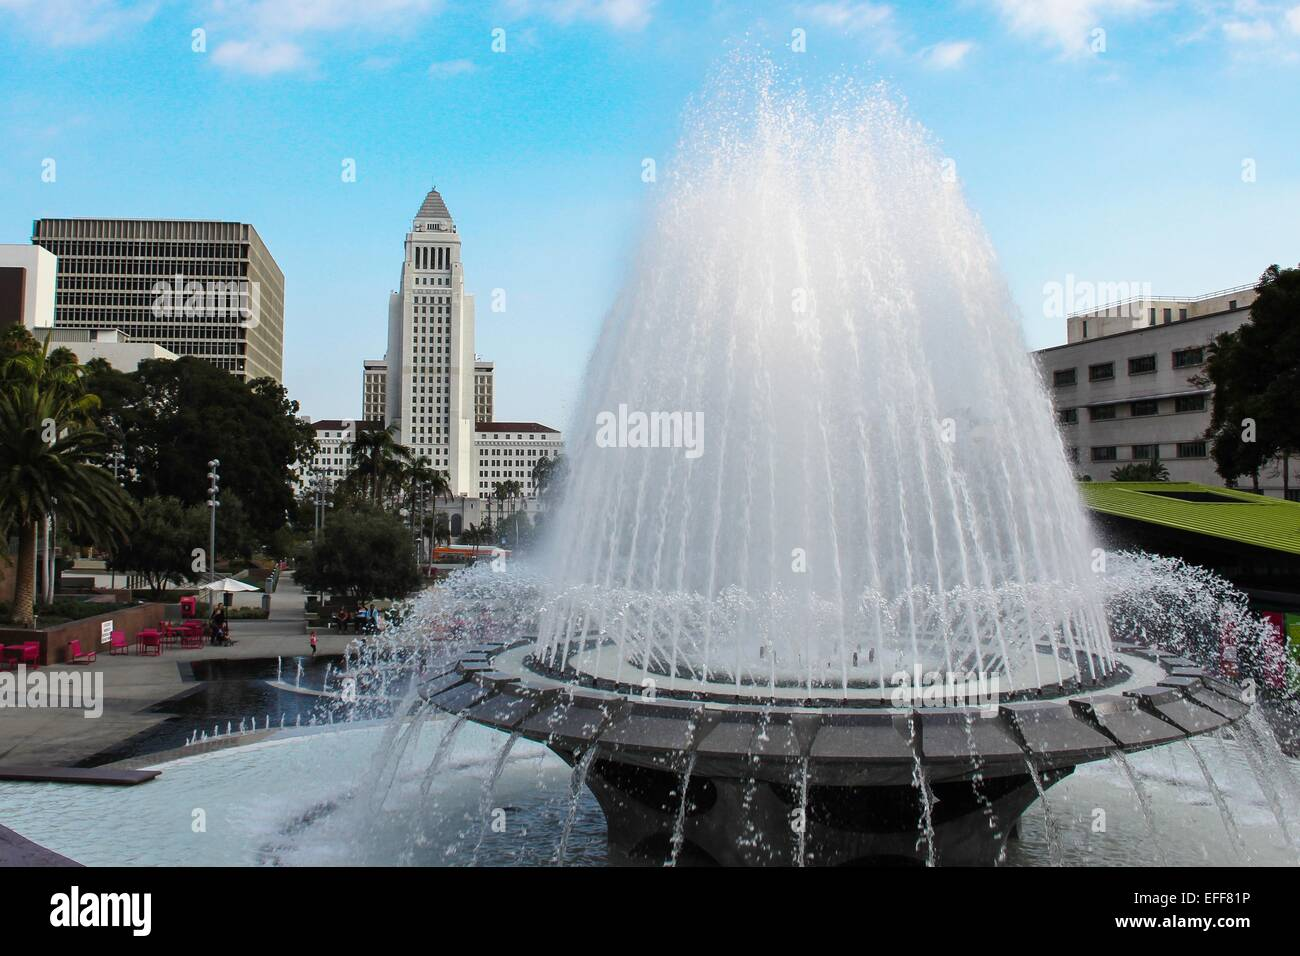 Flowing fountain in Grand Park in front of Los Angeles City Hall - Stock Image